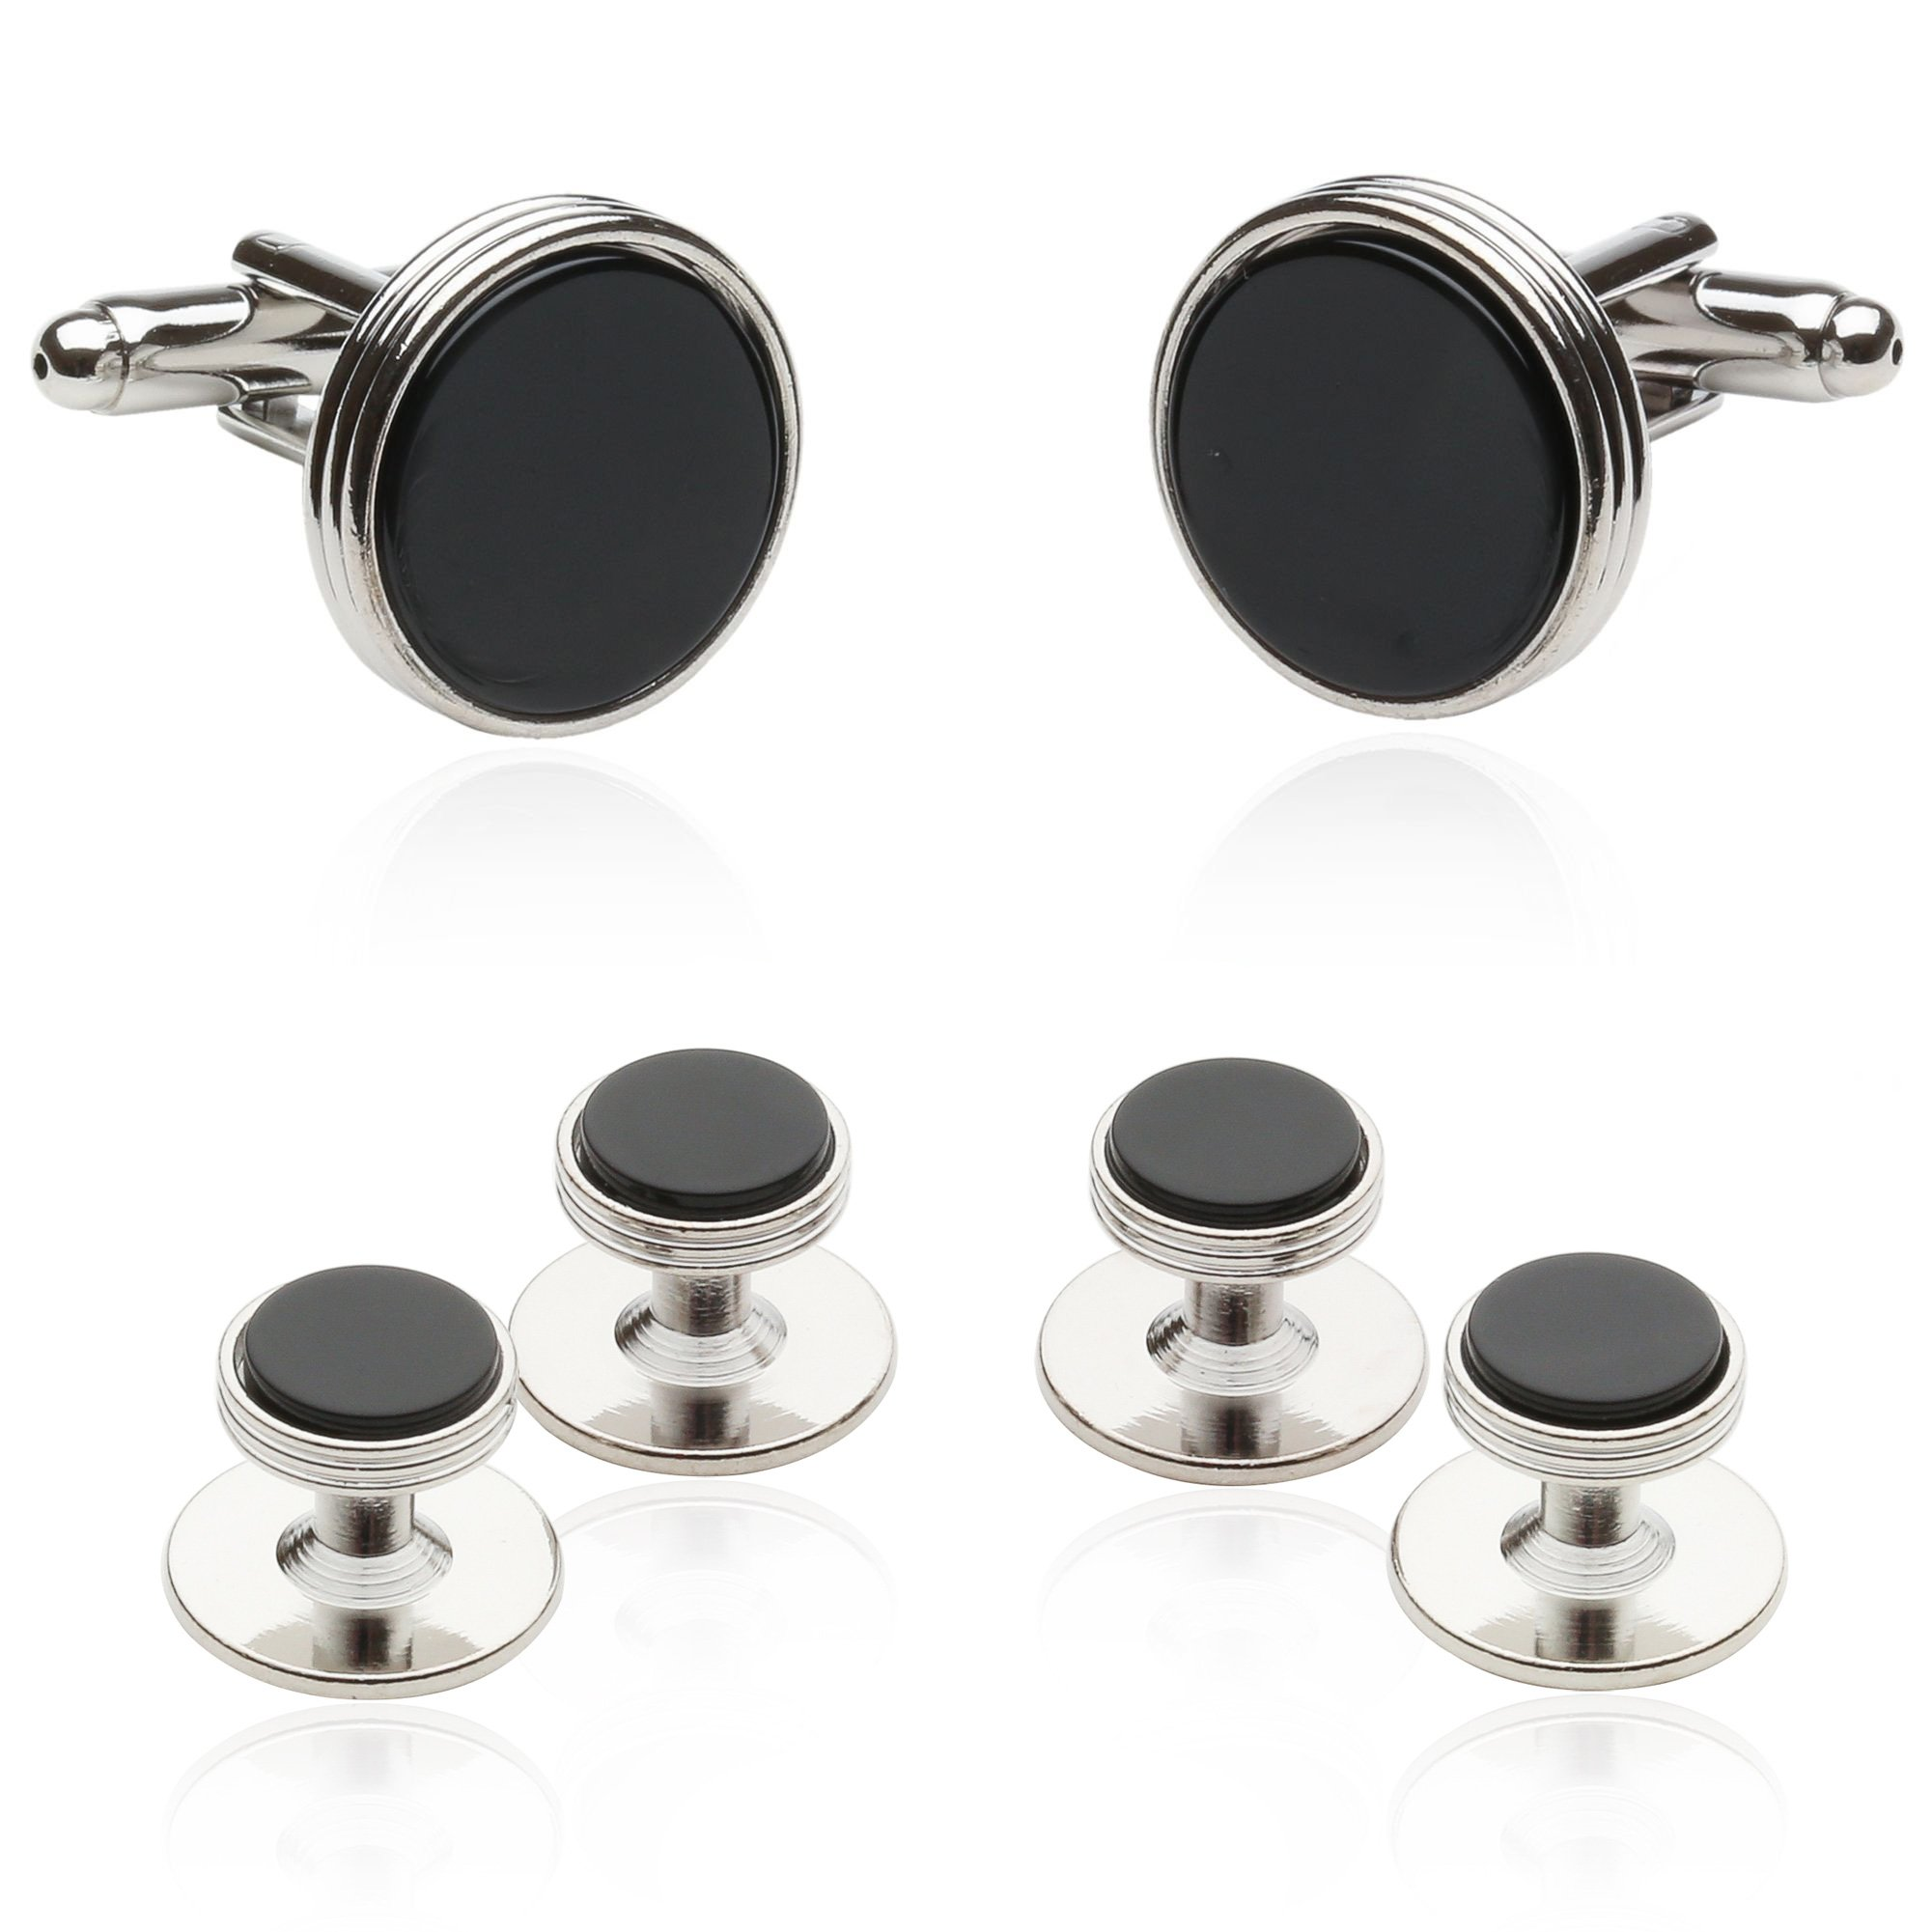 Cuff-Daddy Tuxedo Cufflinks and Studs Formal Set in Black Onyx and Silver with Presentation Box